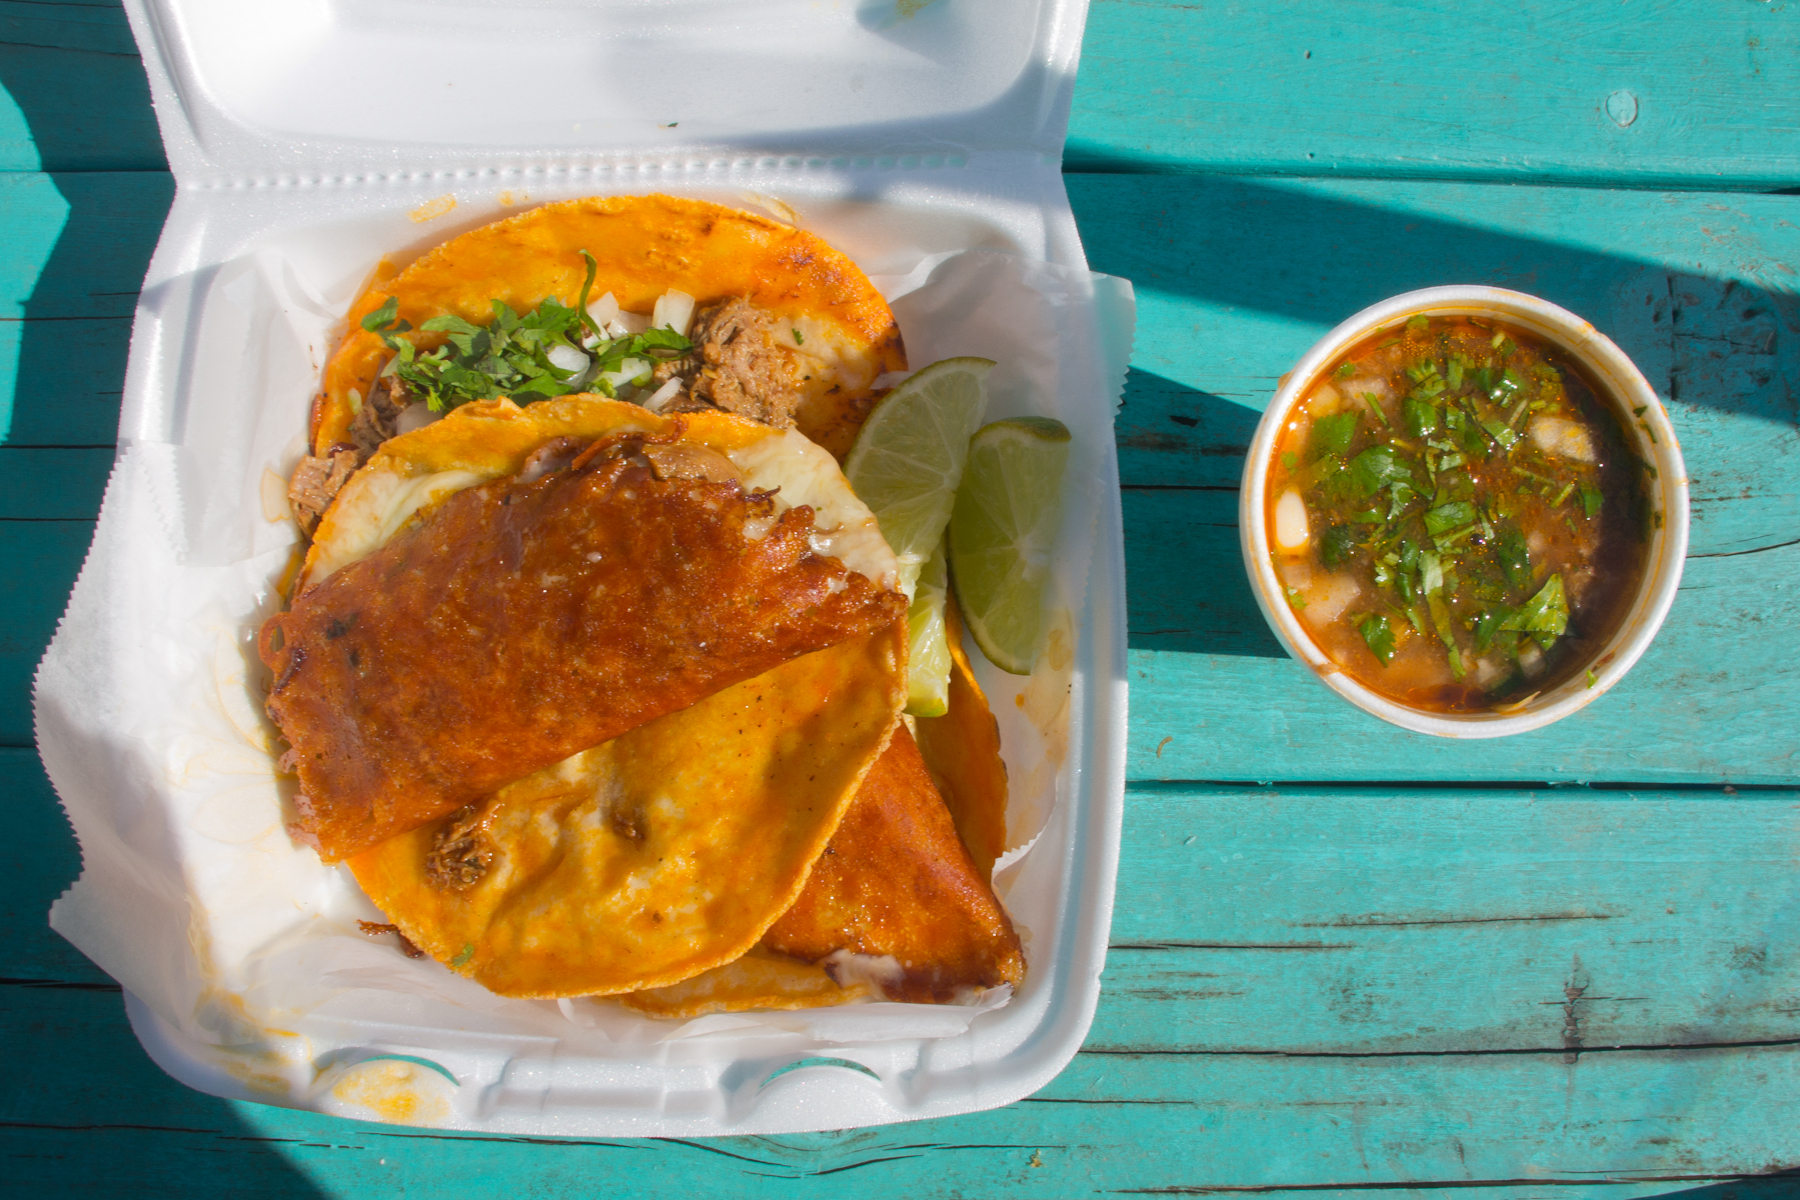 Tacos with cheese, meat, cilantro, and onions on white styrofoam food container on the left with a white styrofoam cup of consomme on the right on top of a teal-blue table